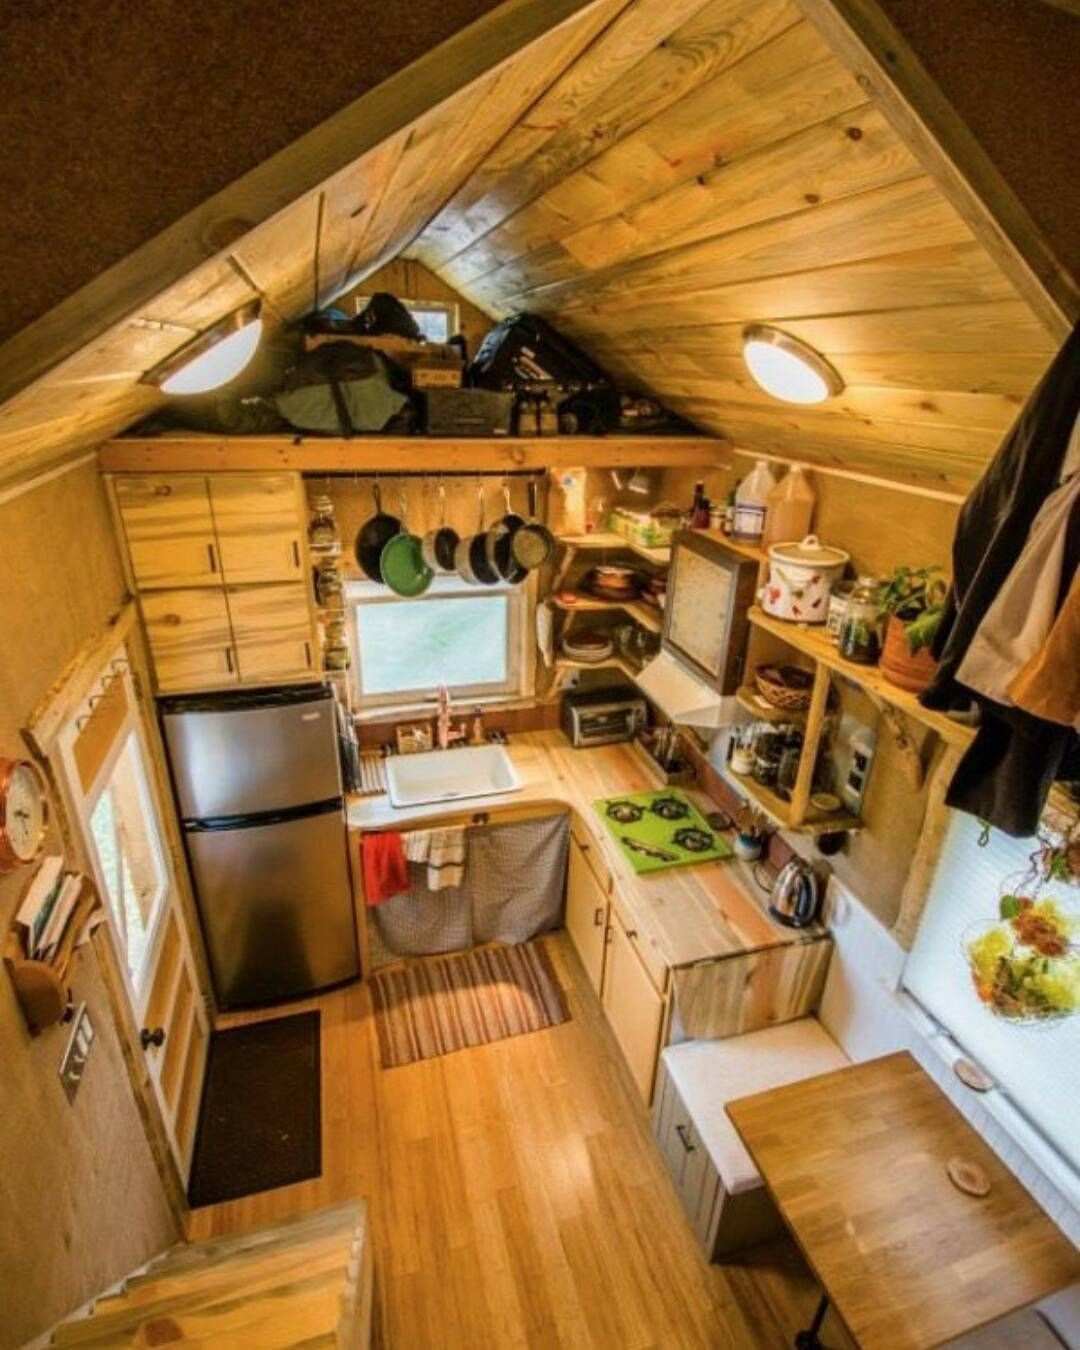 Mitchcraft Tiny Homes Via Dreamhousetogo Tumblr 1 of 6